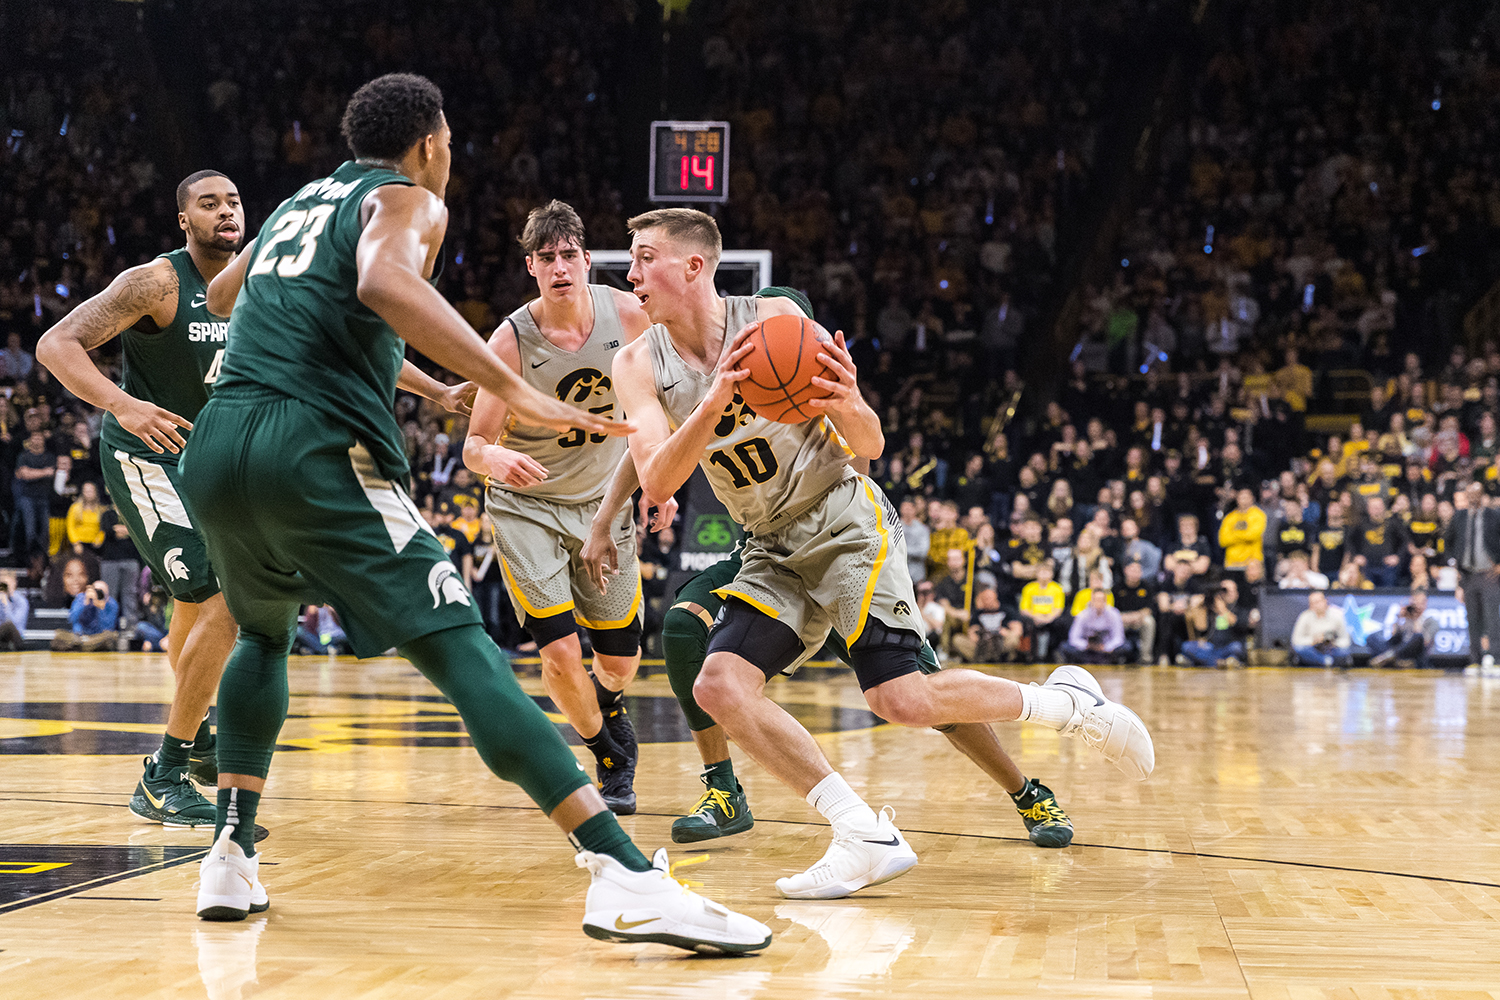 Iowa guard Joe Wieskamp #10 drives into traffic during a basketball game against Michigan State on Thursday, Jan. 24, 2019. The Spartans defeated the Hawkeyes 82-67.